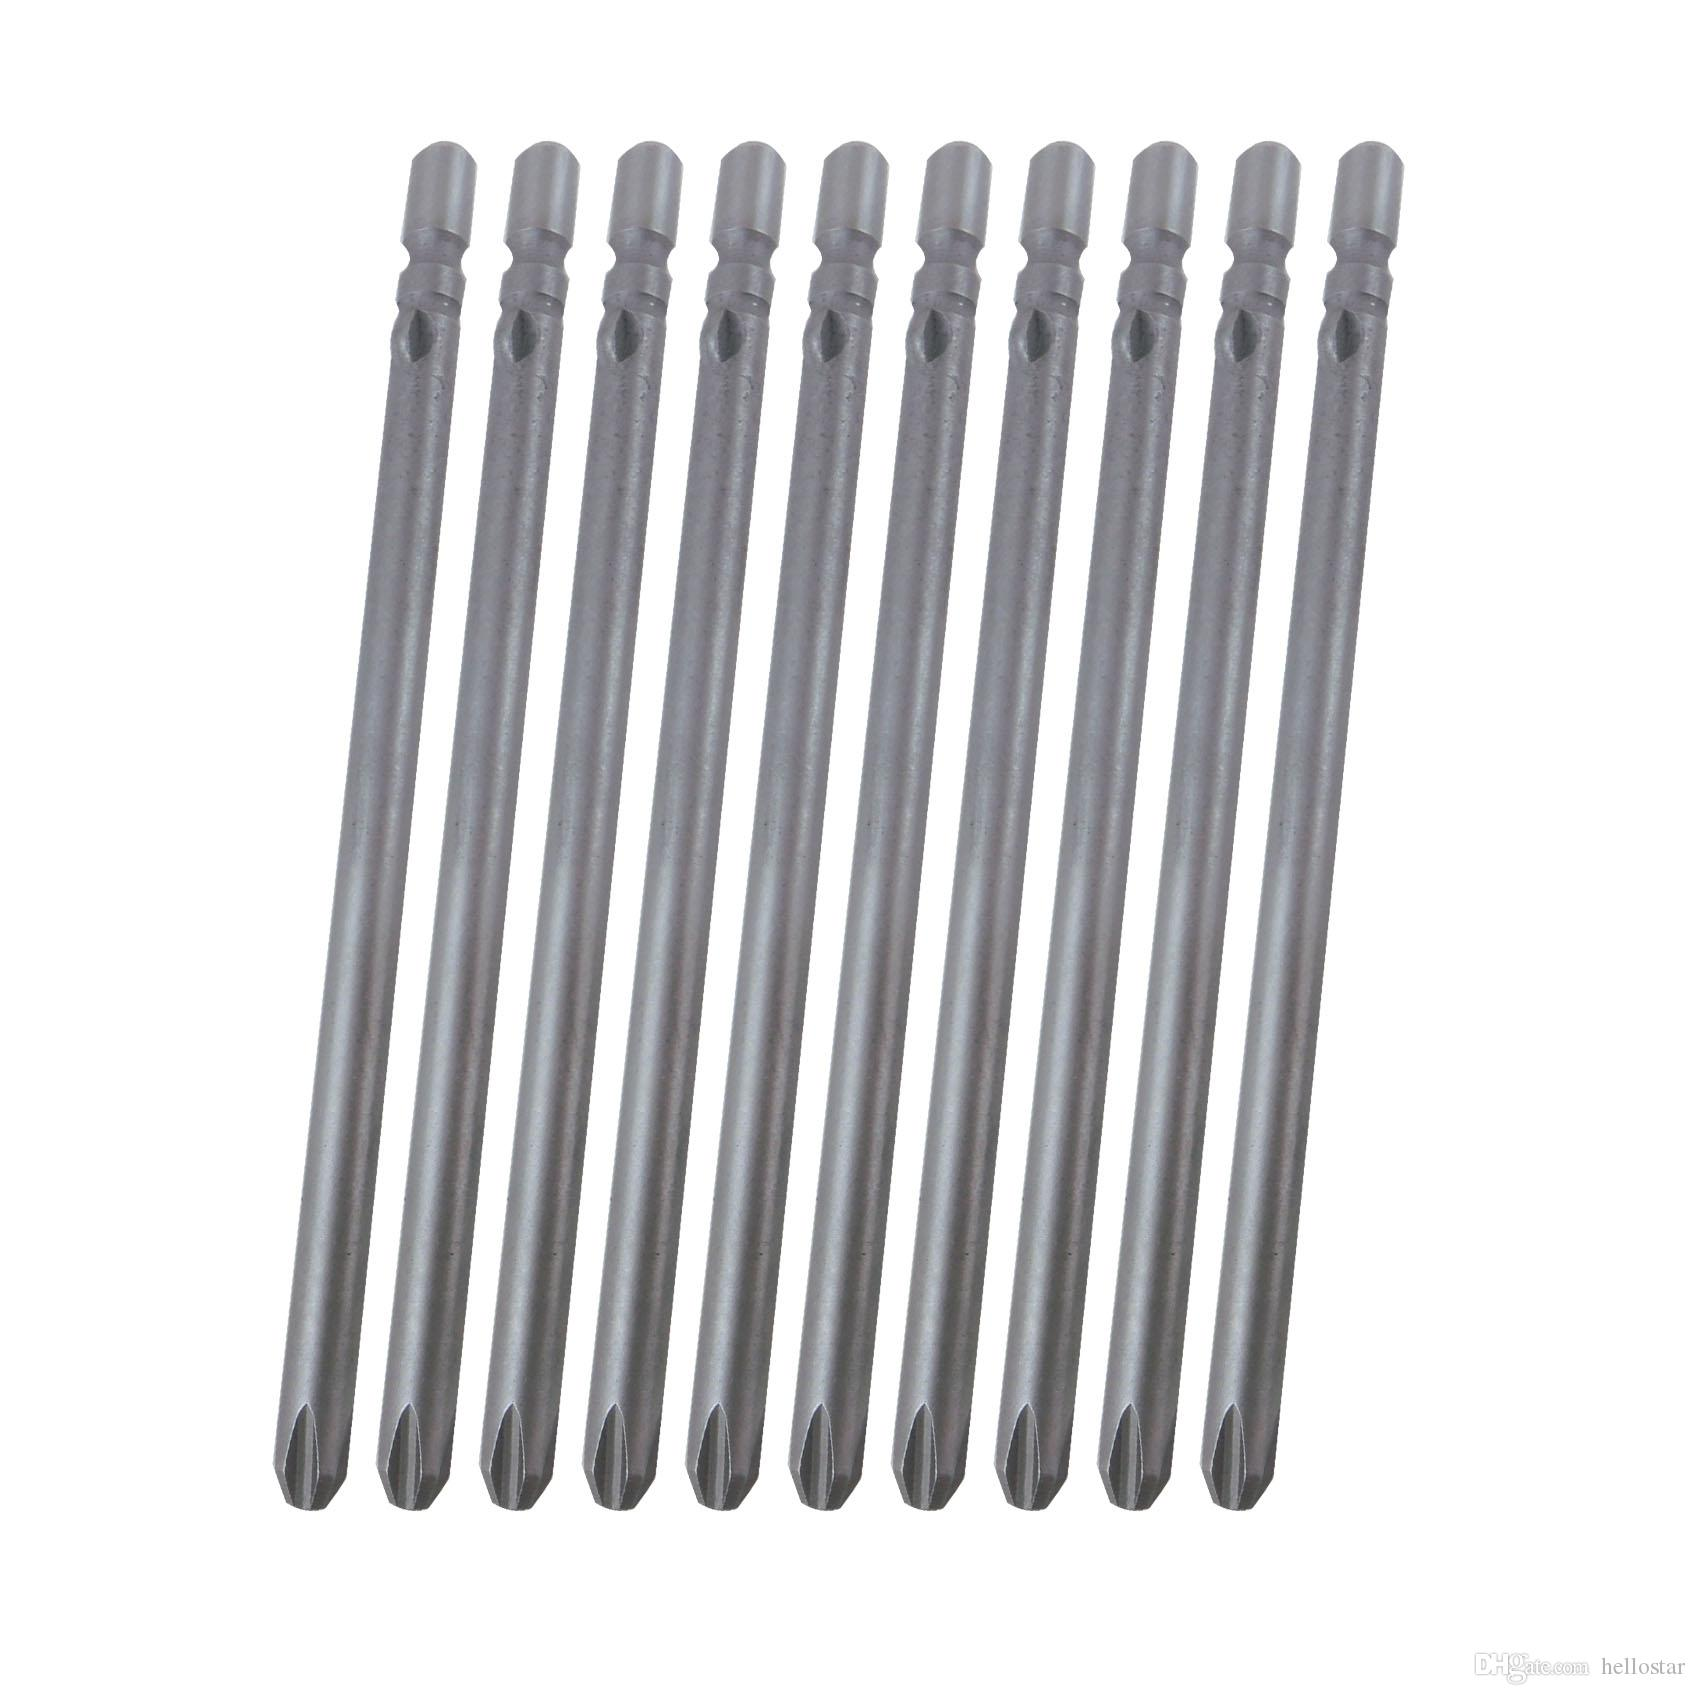 Shank 4mm Diameter Length 80mm S2 Material Silvery Gray Magnetic Phillips Screwdriver Bits PH00 PH0 PH1 PH2 (10pcs pack)